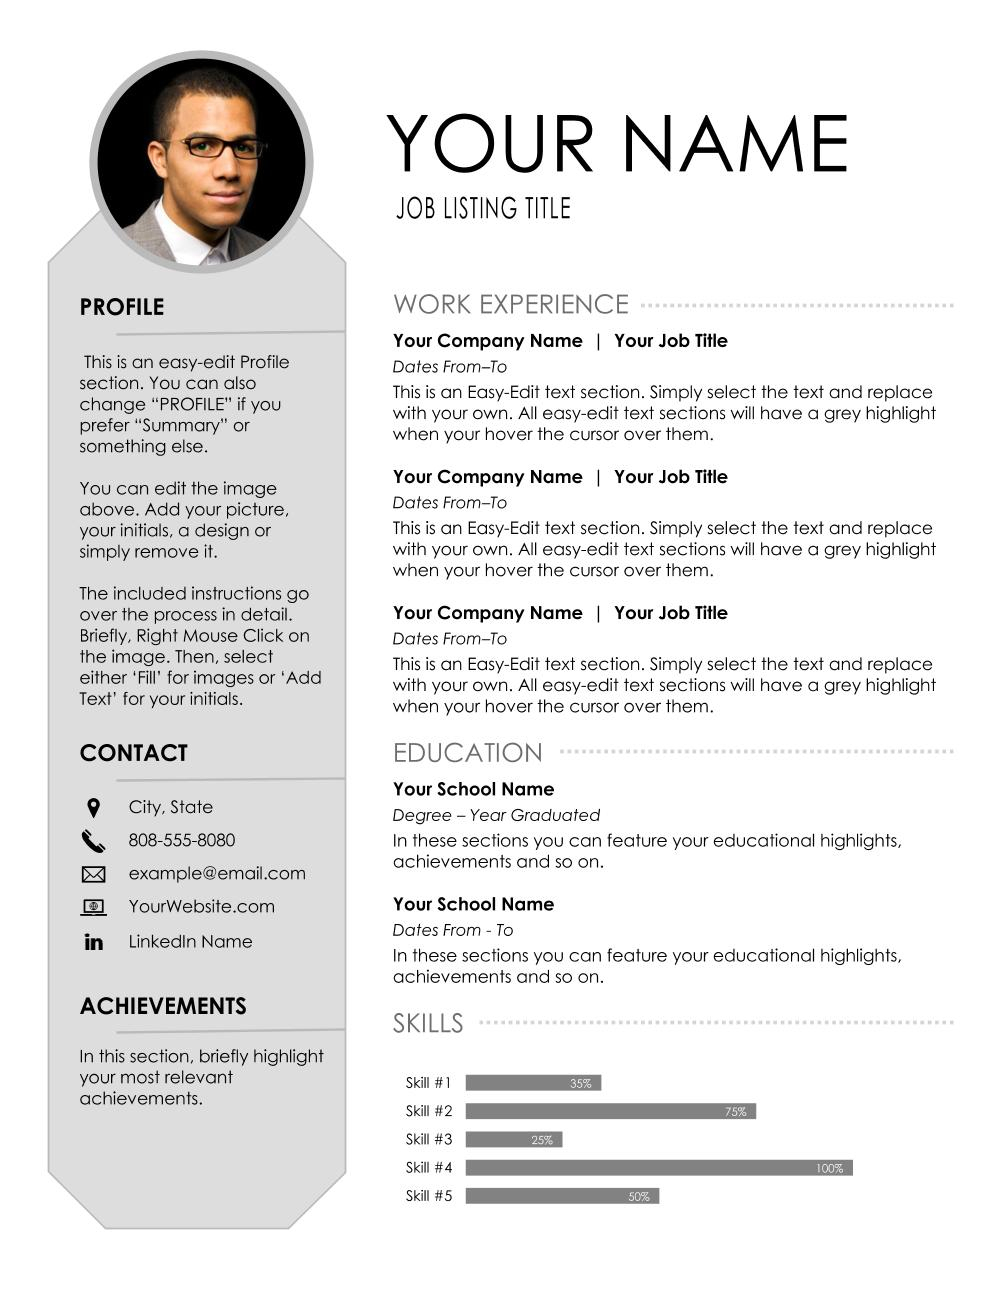 Refined Pro - Resume Template